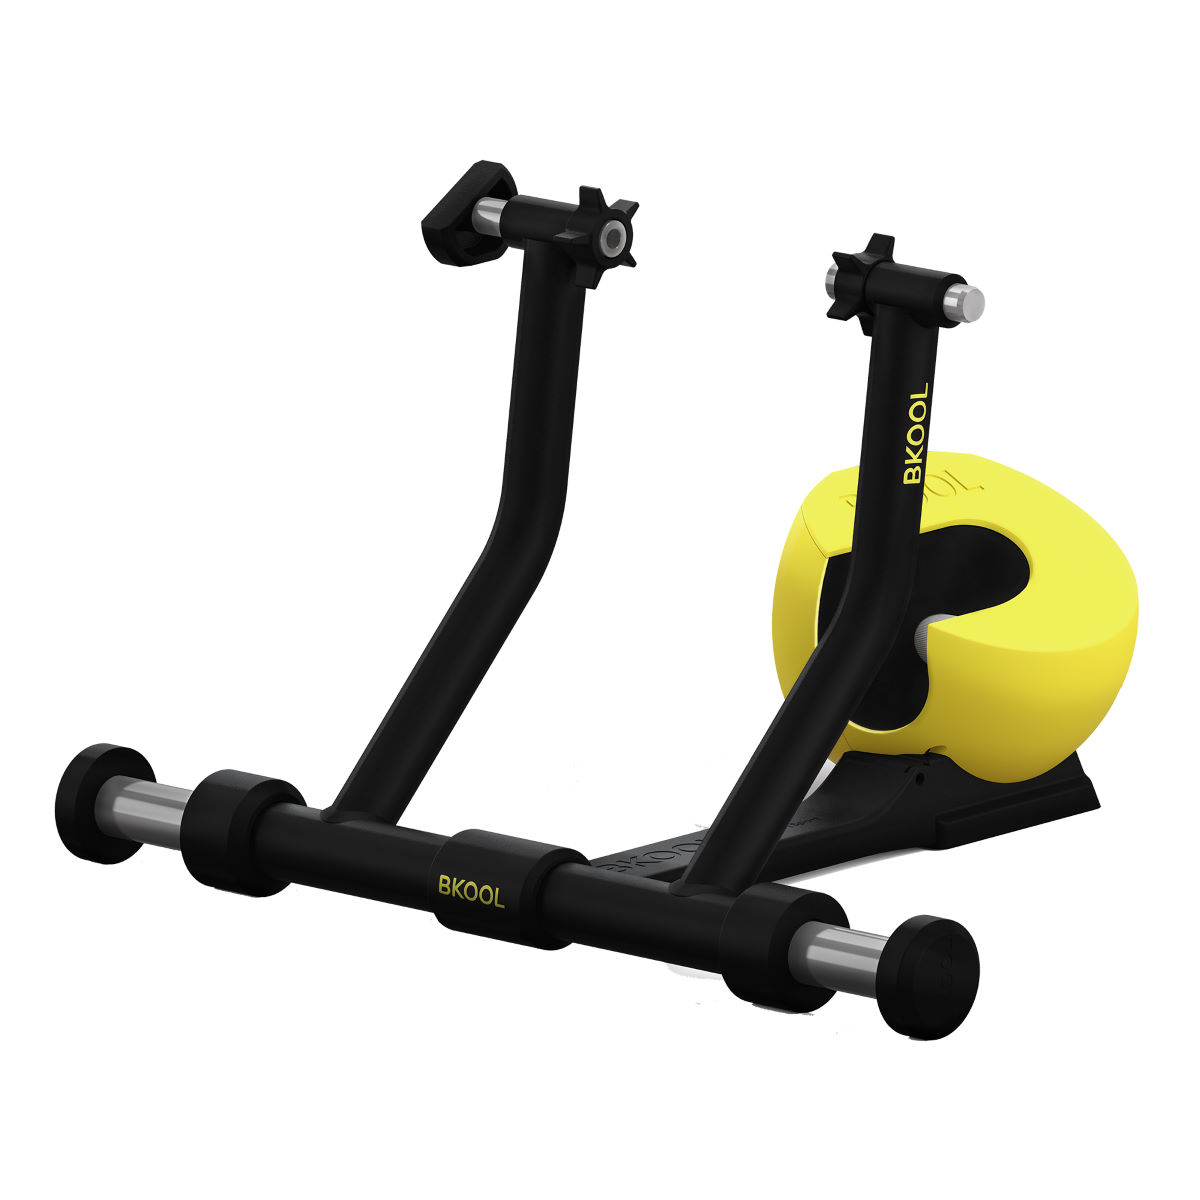 Home trainer Bkool Smart Pro II - One Size Noir/Jaune